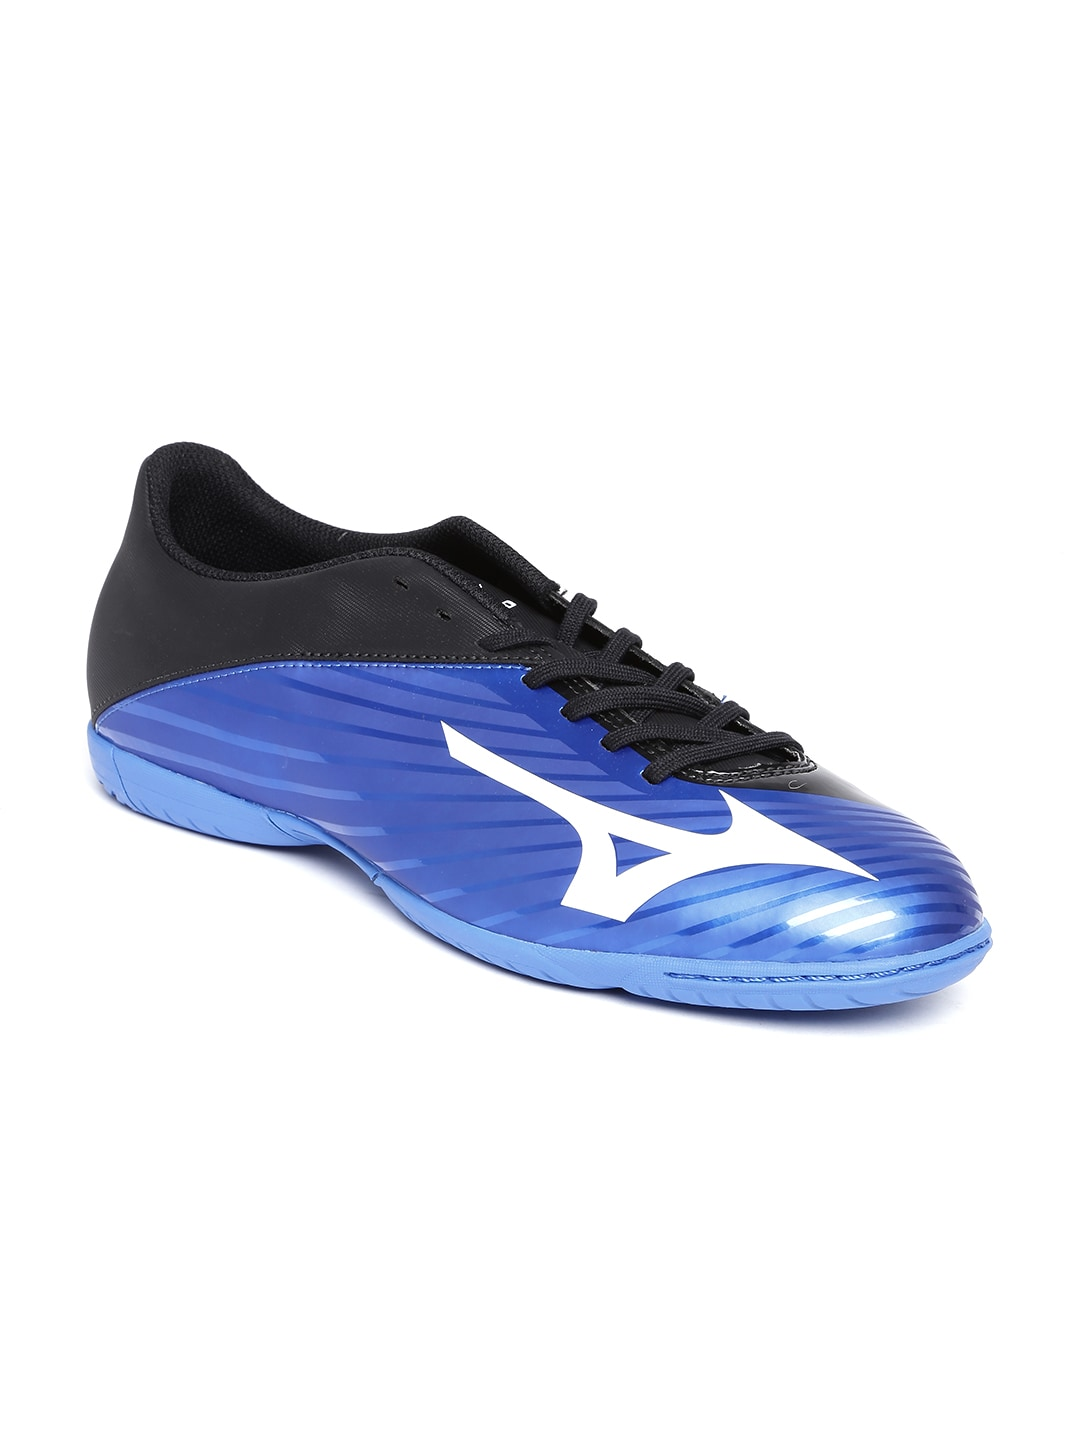 90a4b152afed Mizuno Waverunning - Buy Mizuno Waverunning online in India